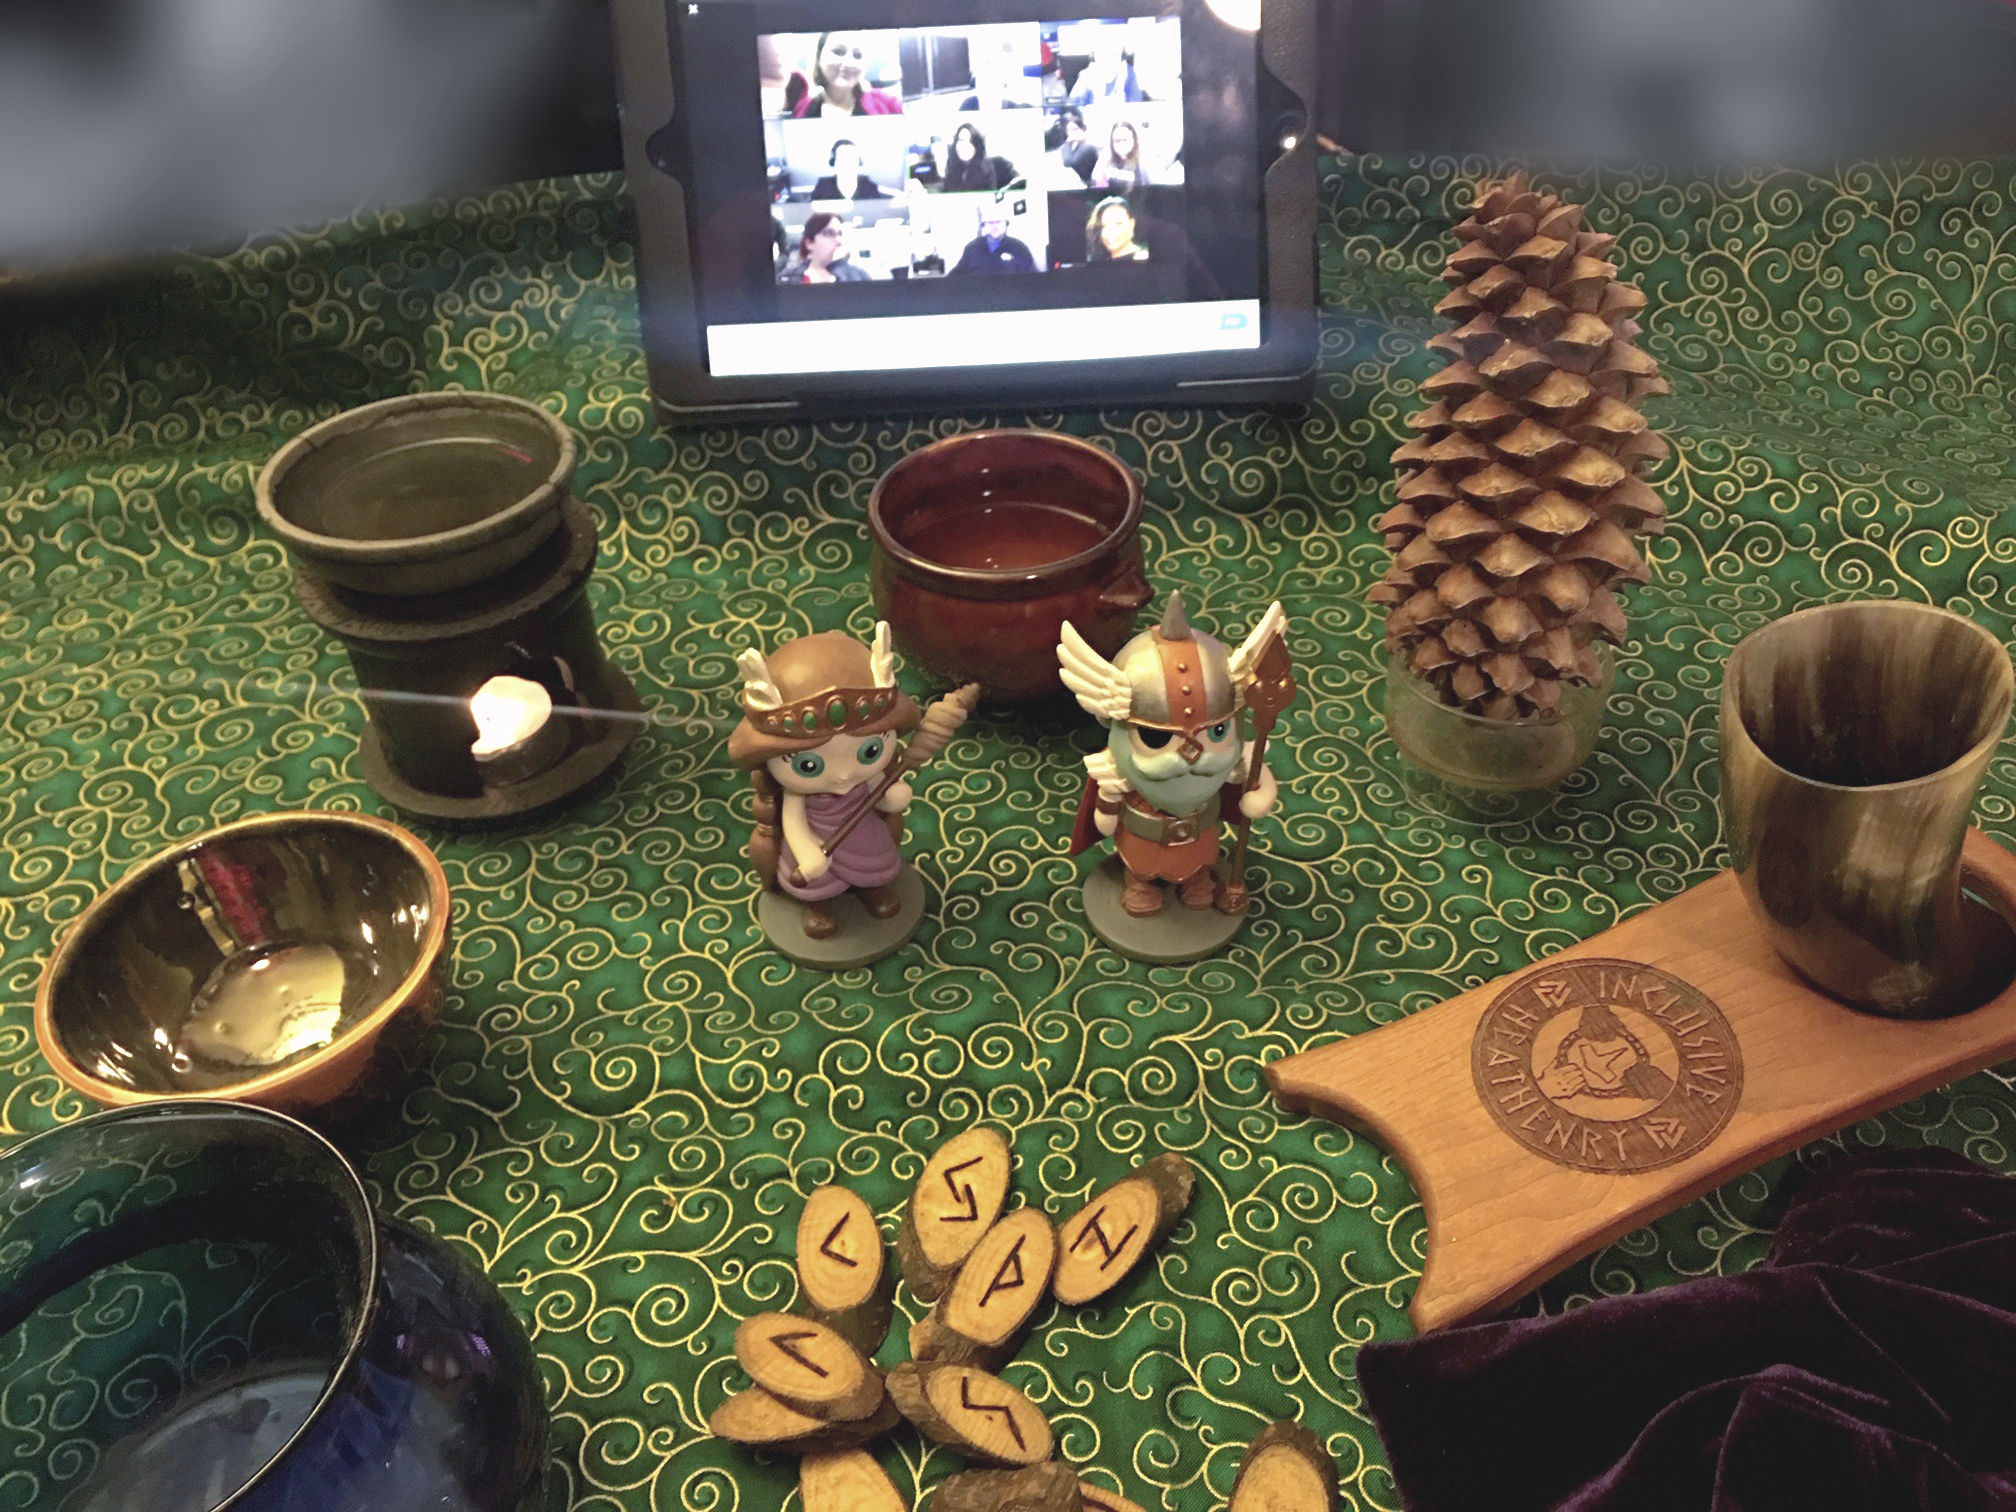 Desk top altar set up. iPad screen,representations of the gods; incense and offering; divination tools (runes, scrying bowl), and an offering bowl.